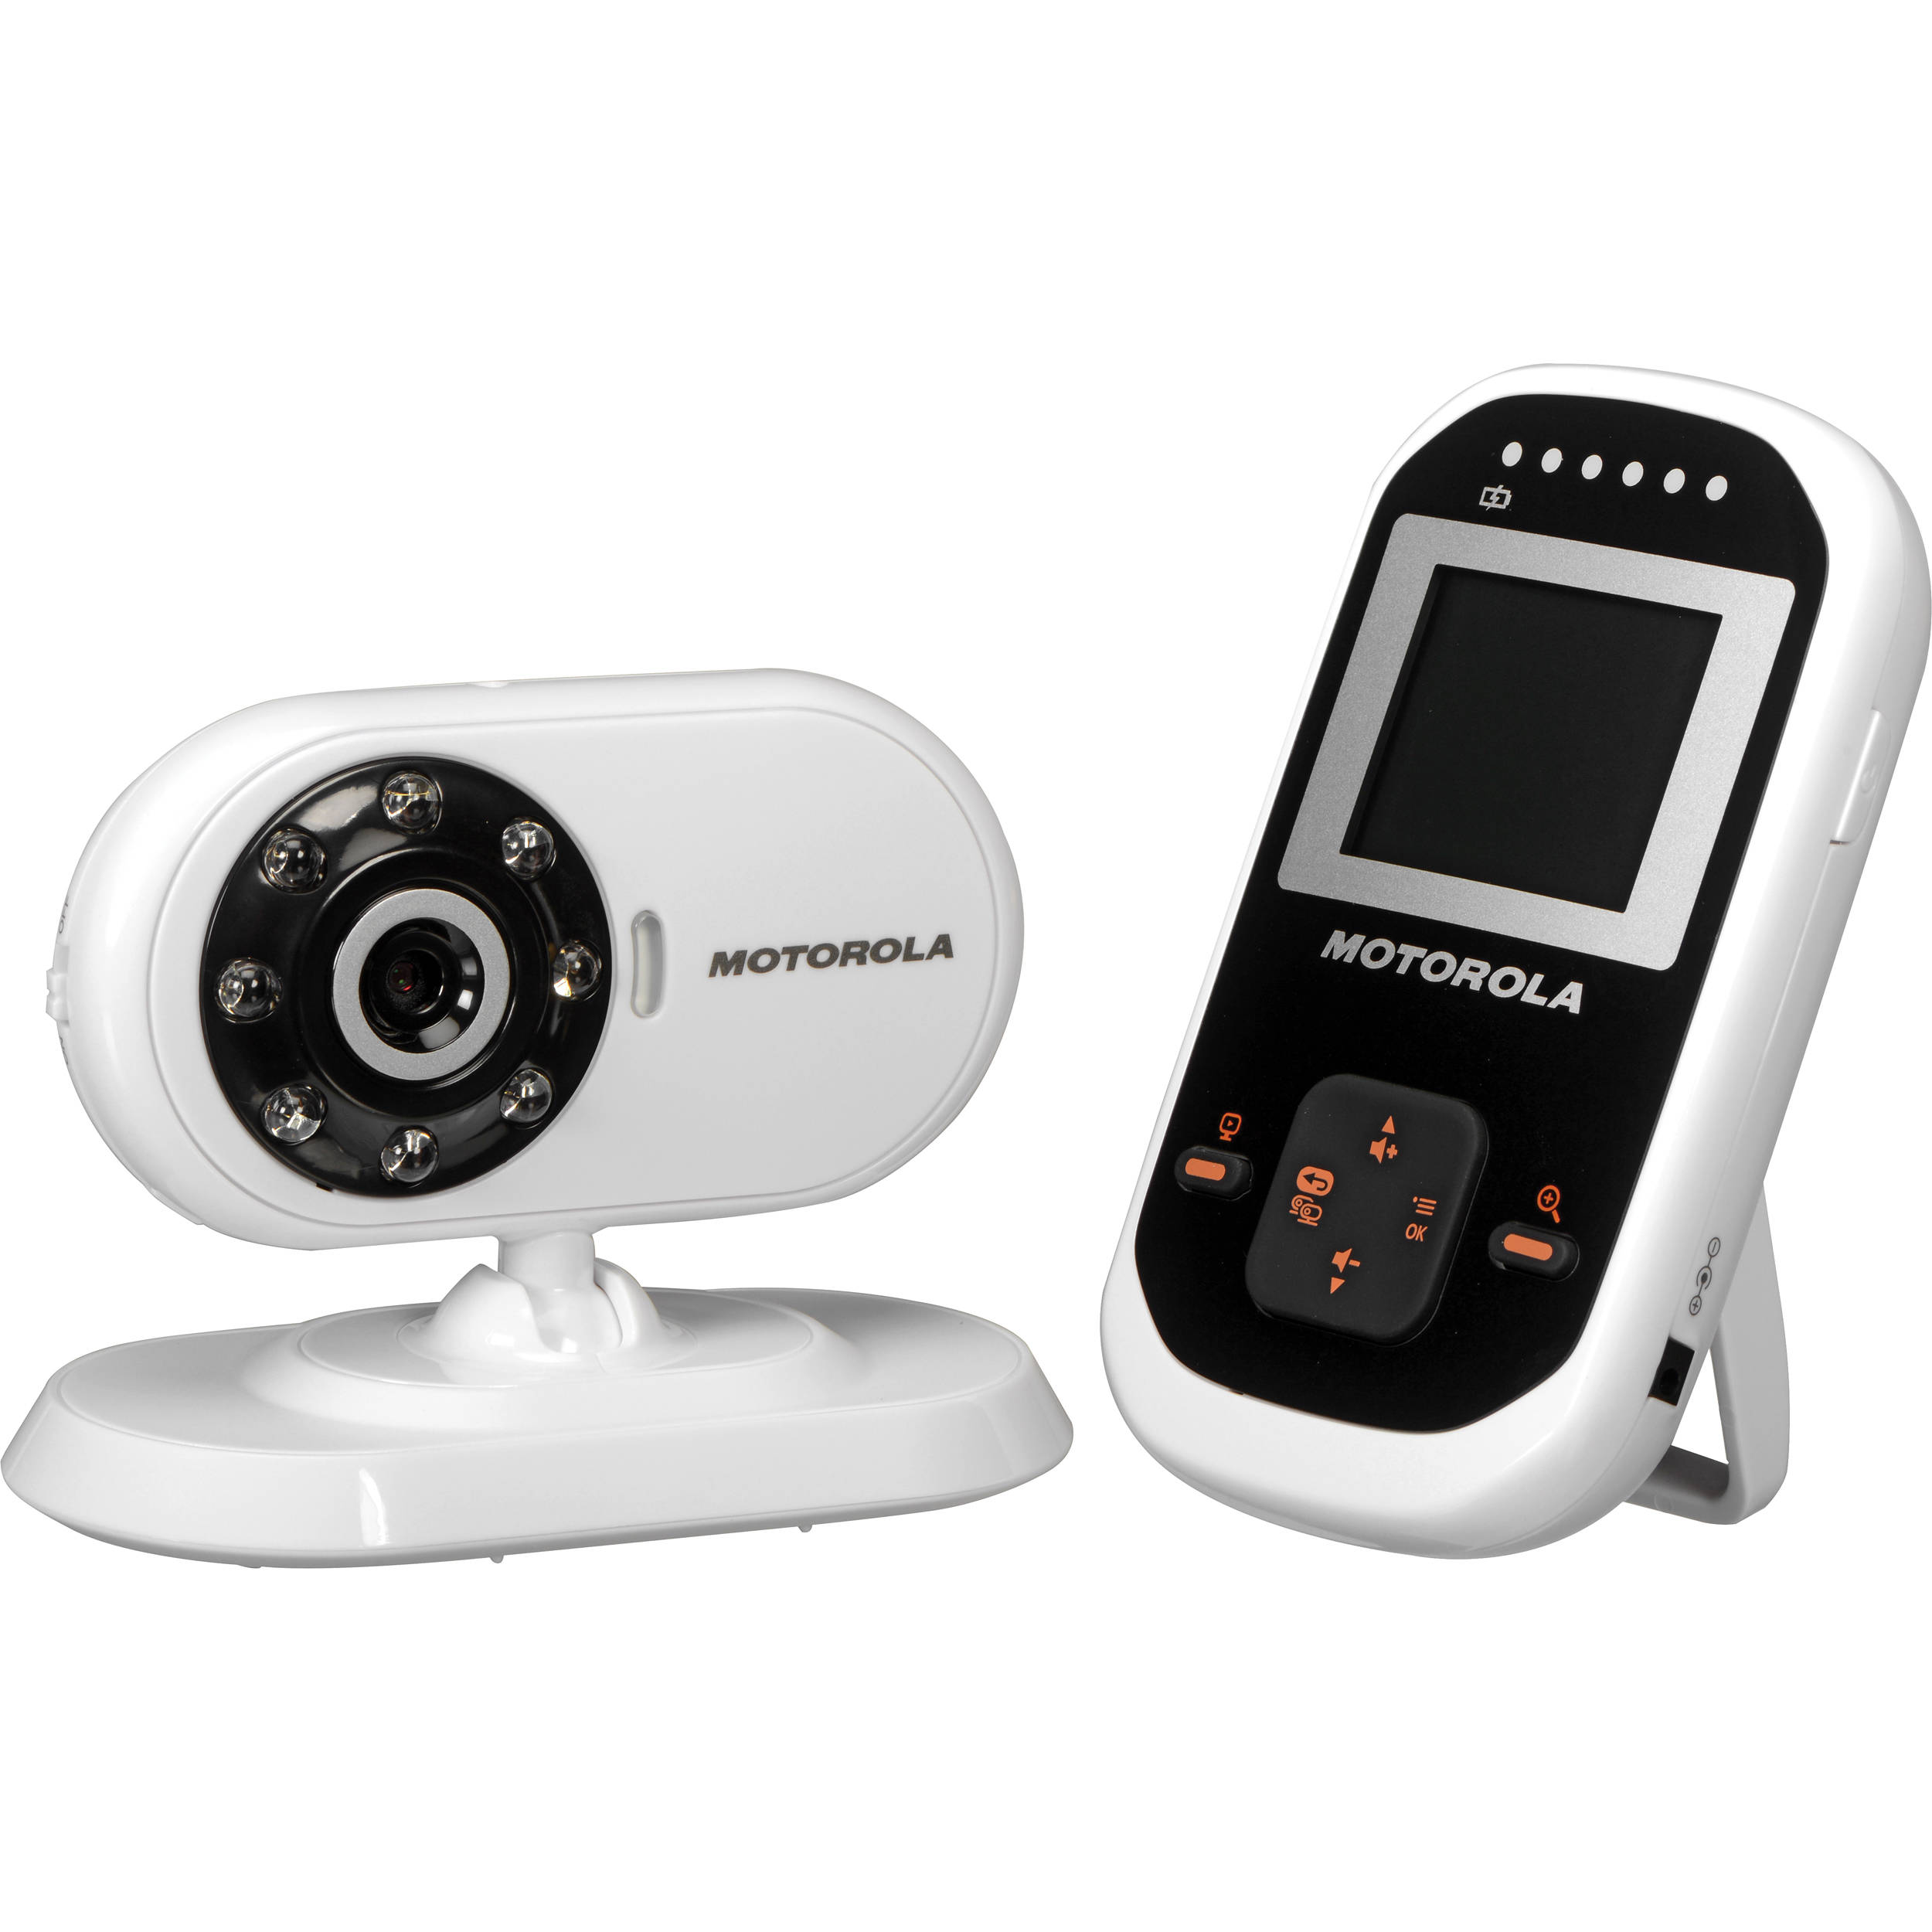 Motorola Wireless Color Video Baby Monitor and Camera